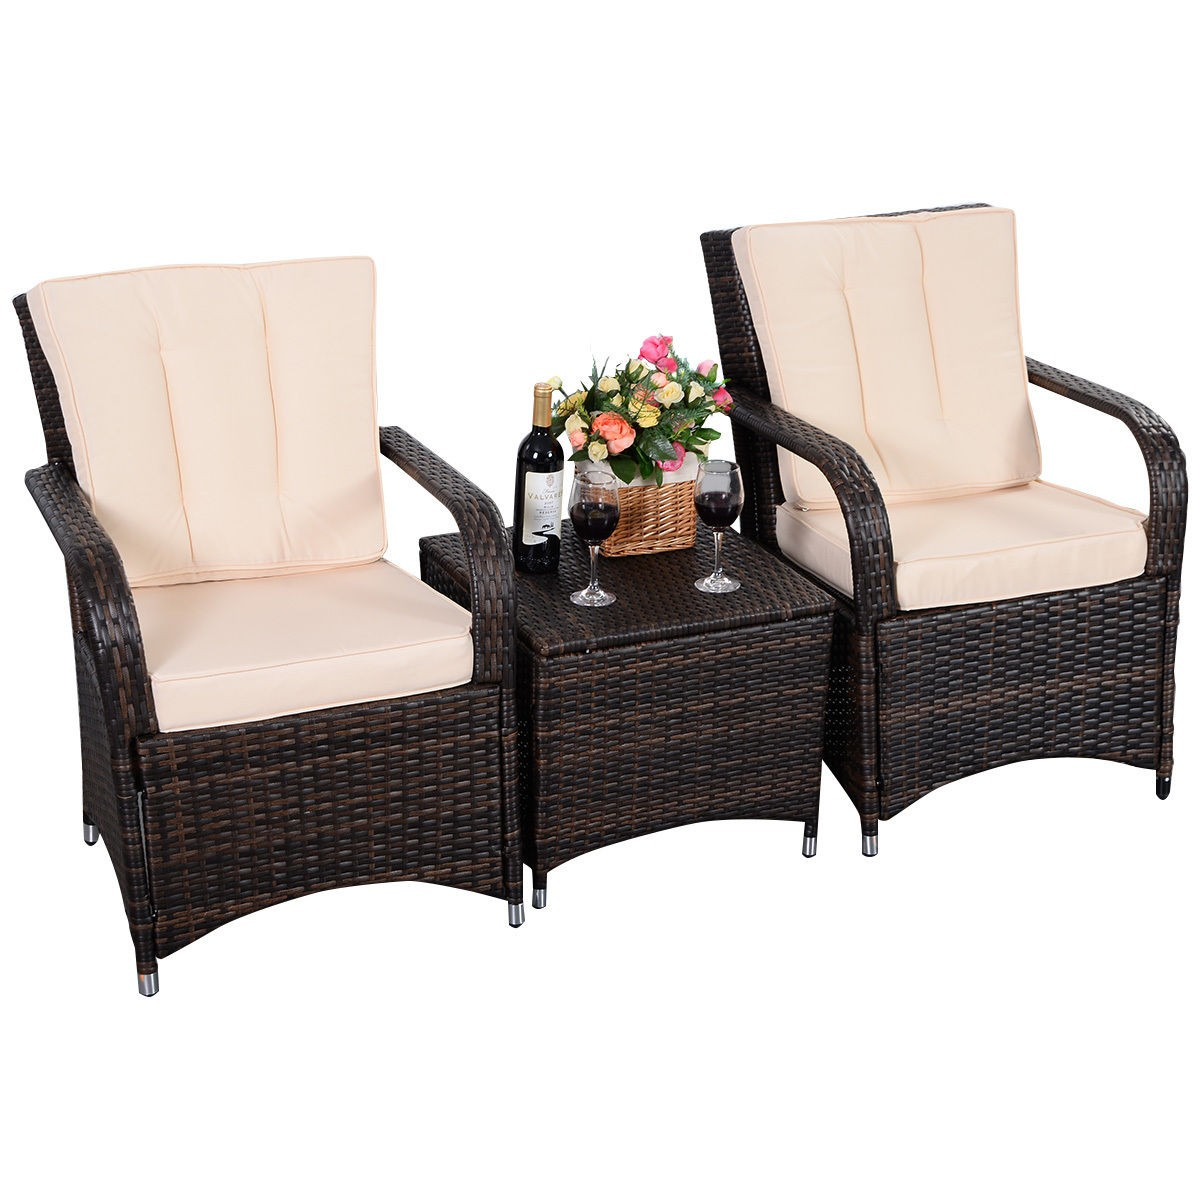 3 Qualited Patio PE Rattan Wicker Furniture Set Outdoor Seat Cushioned Mix Brown